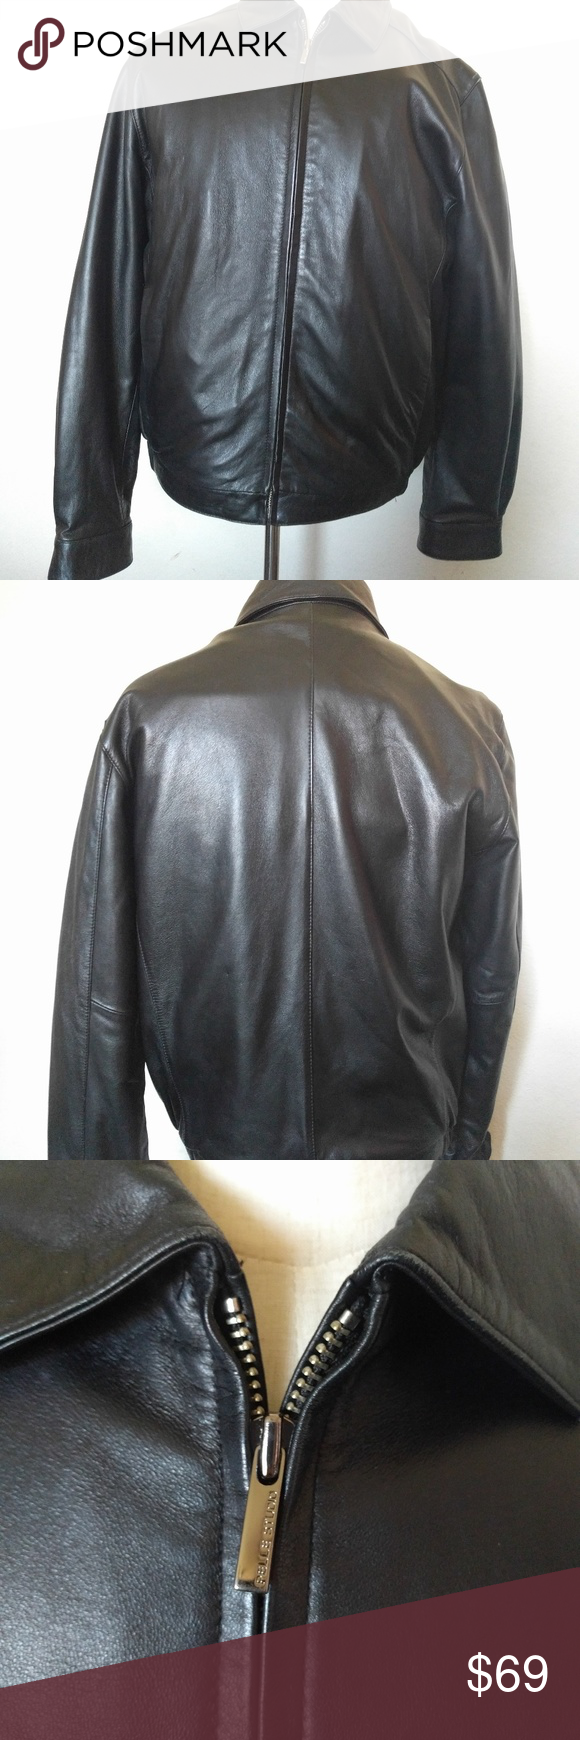 Wilsons leather Pelle studio medium leather jacket Wilson